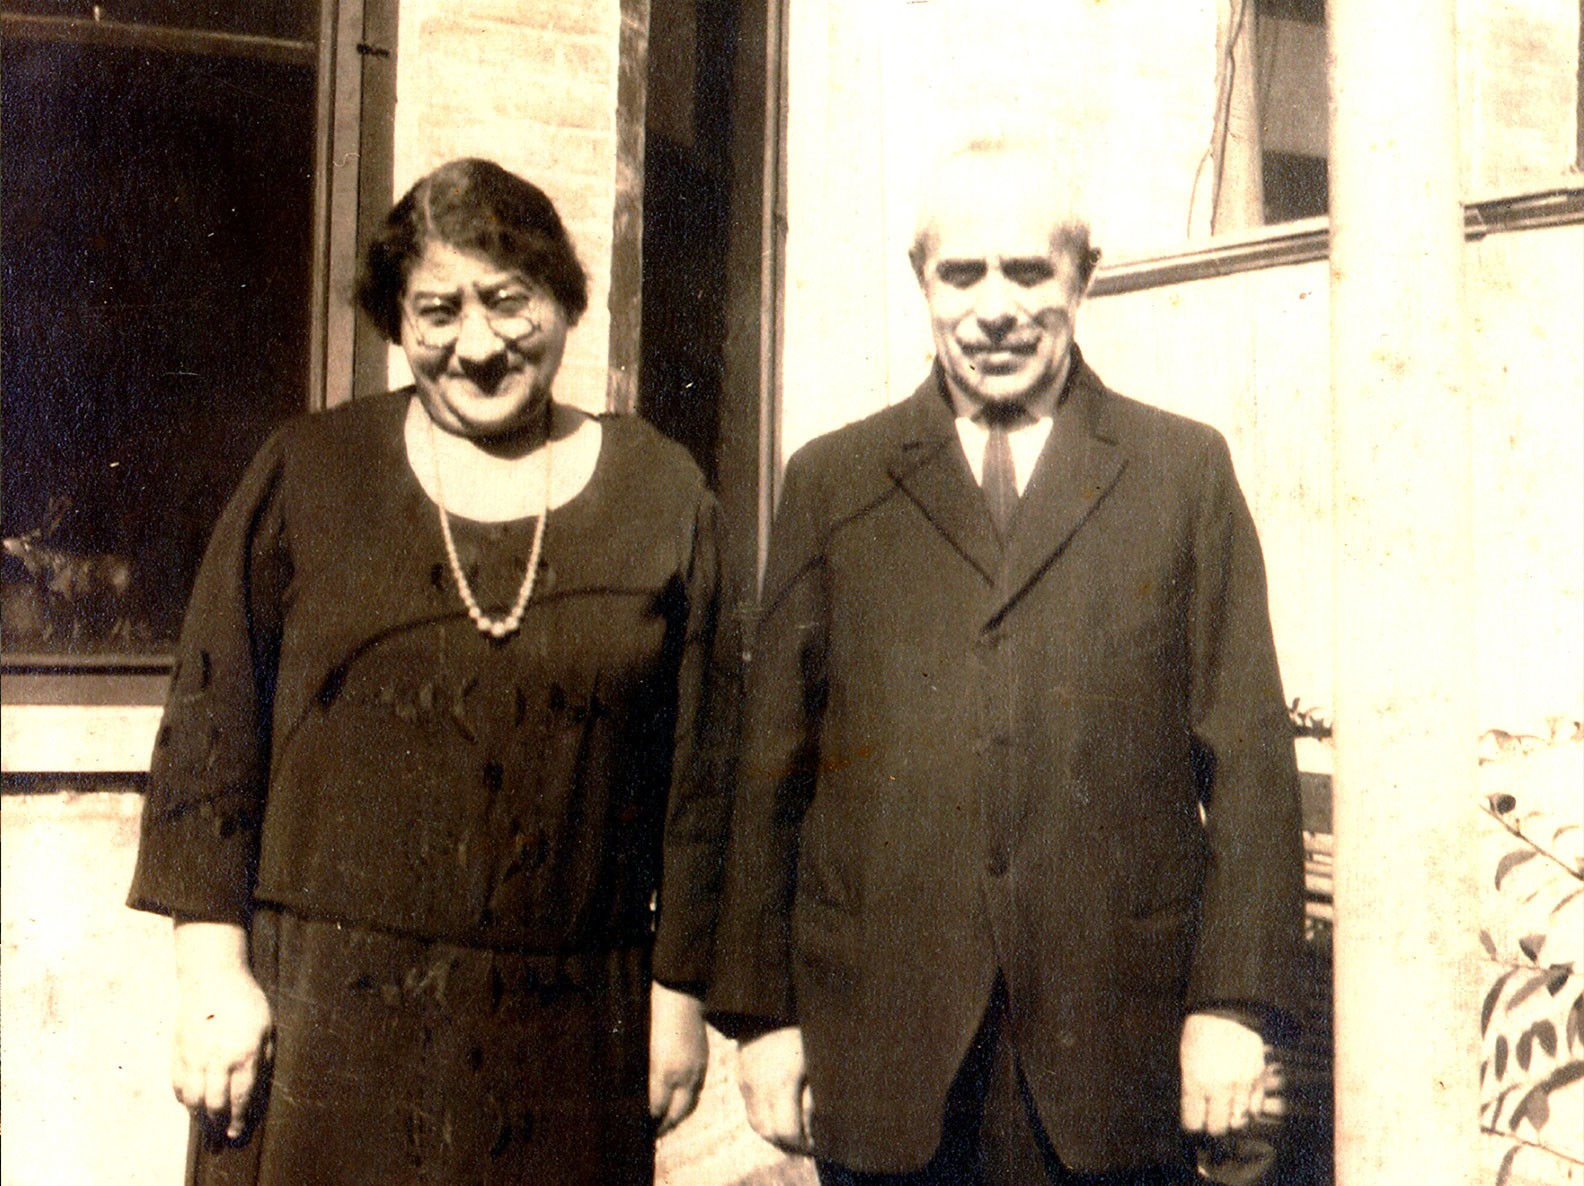 Photo portrait of Harrs and Jennie Levine circa 1930s